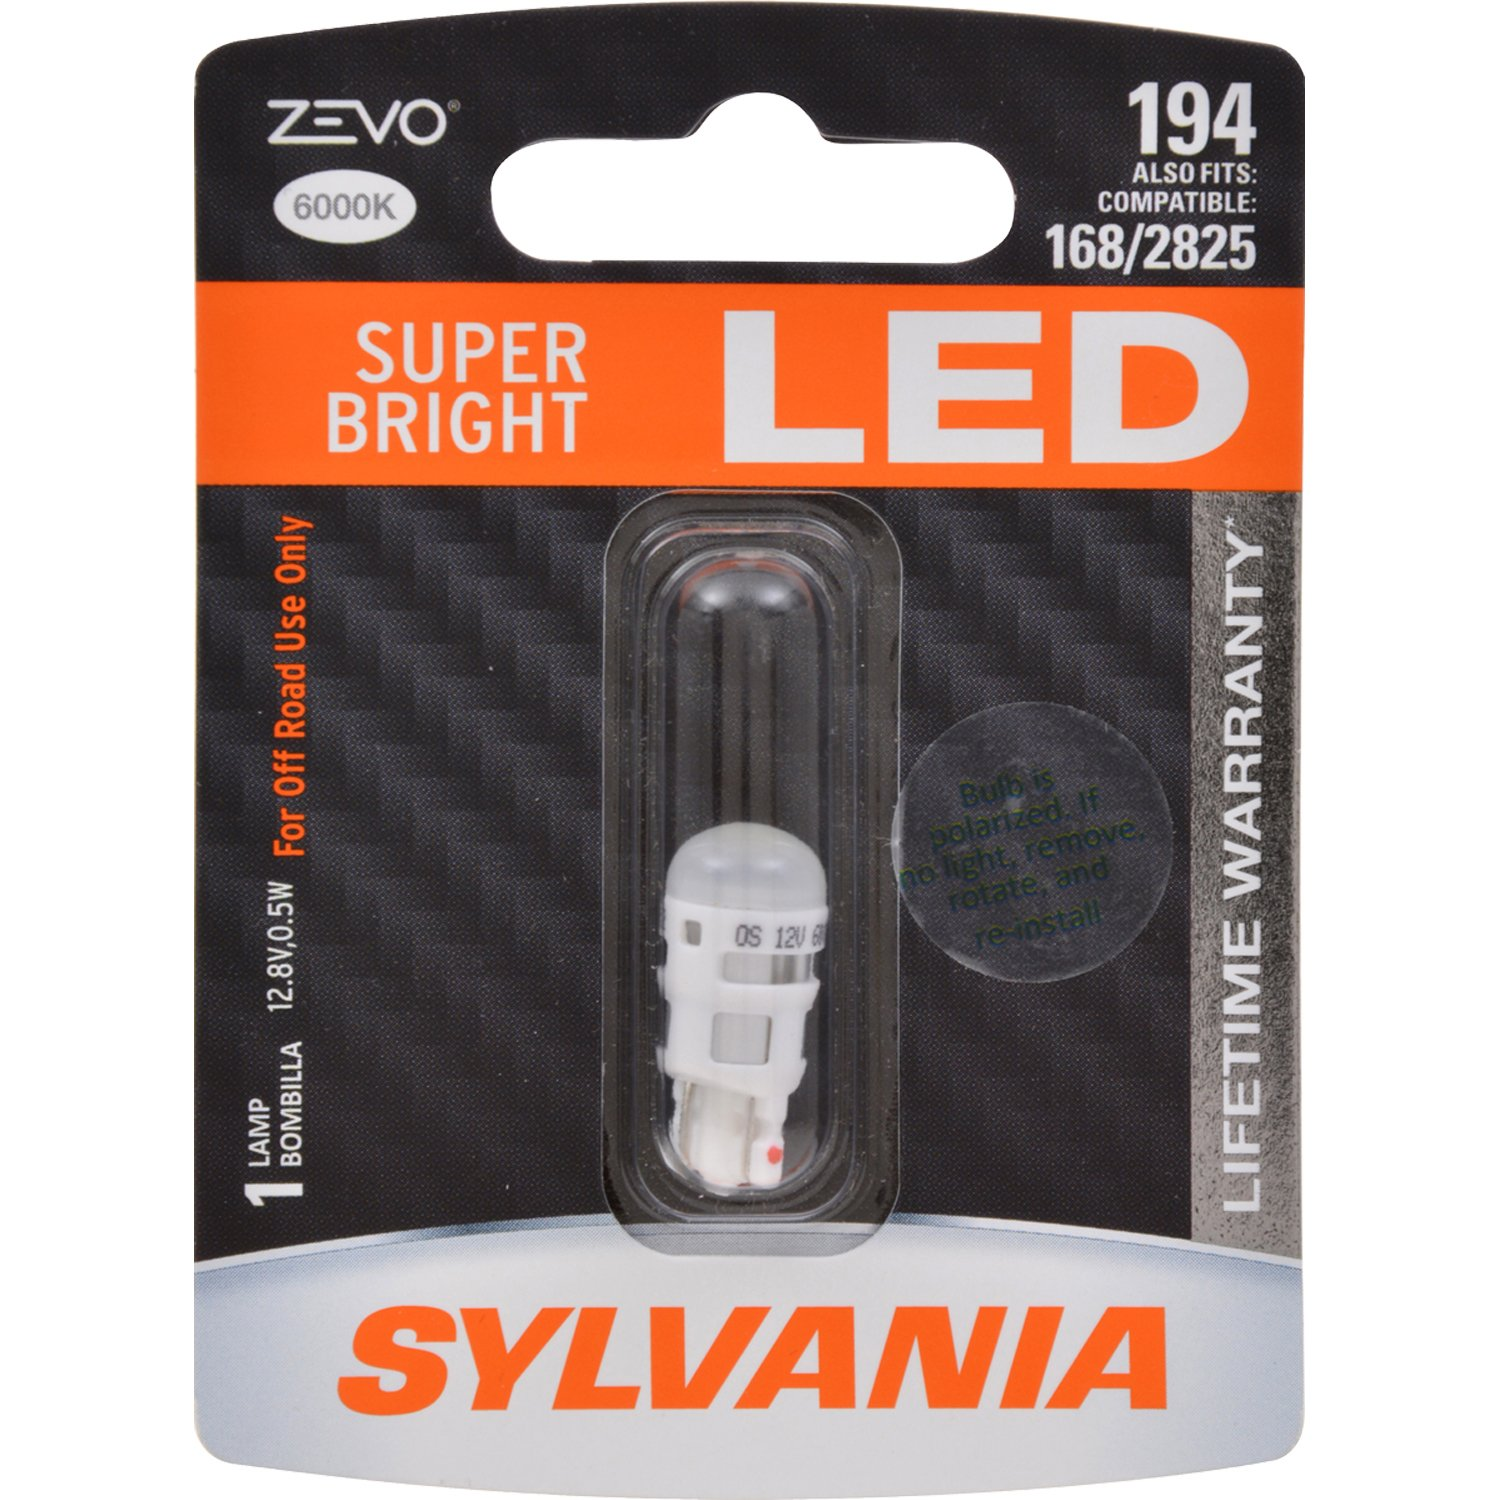 SYLVANIA - 194 T10 W5W ZEVO LED White Bulb - Bright LED Bulb, Ideal for Interior Lighting - Map, Dome, Trunk, Cargo and License Plate (Contains 1 Bulb) 194LED.BP